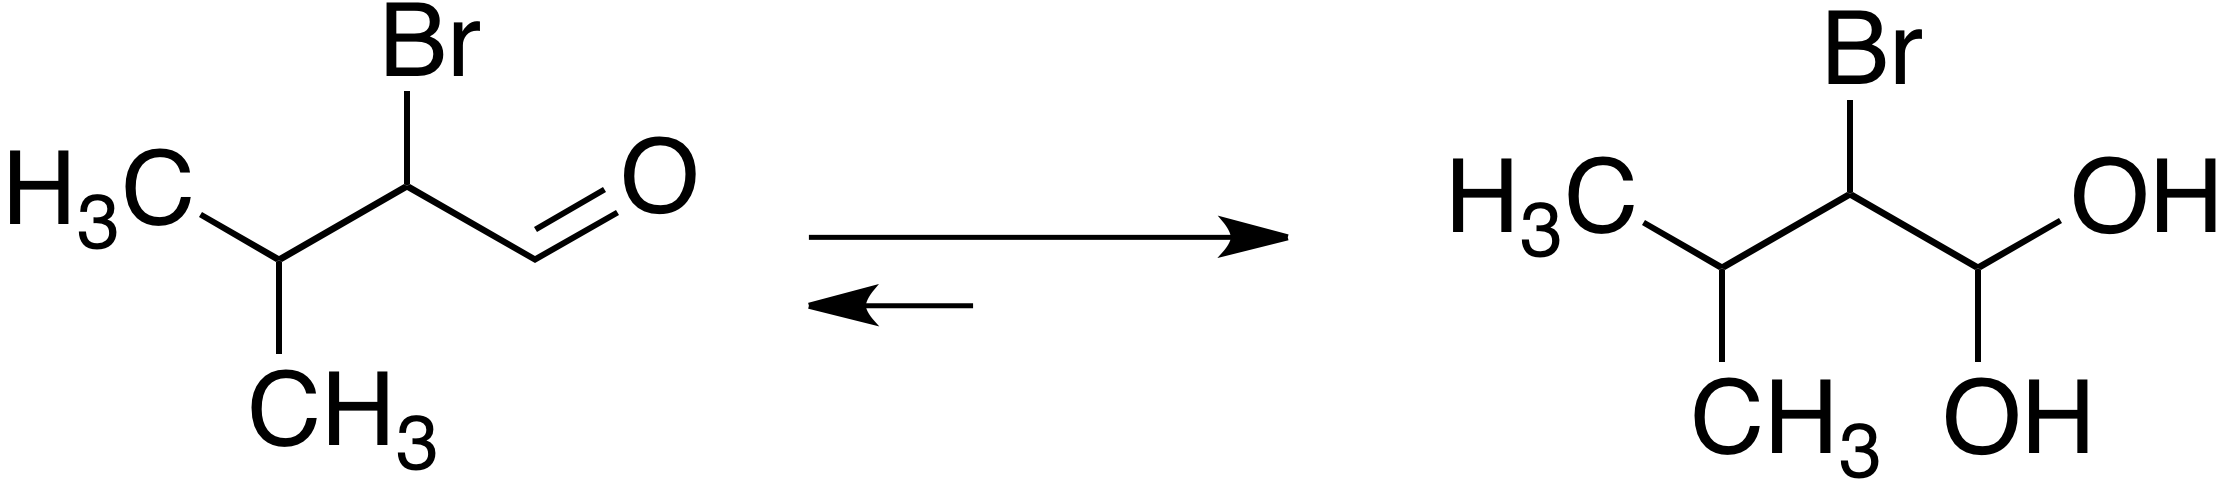 2-Bromo-3-methylbutyraldehyde